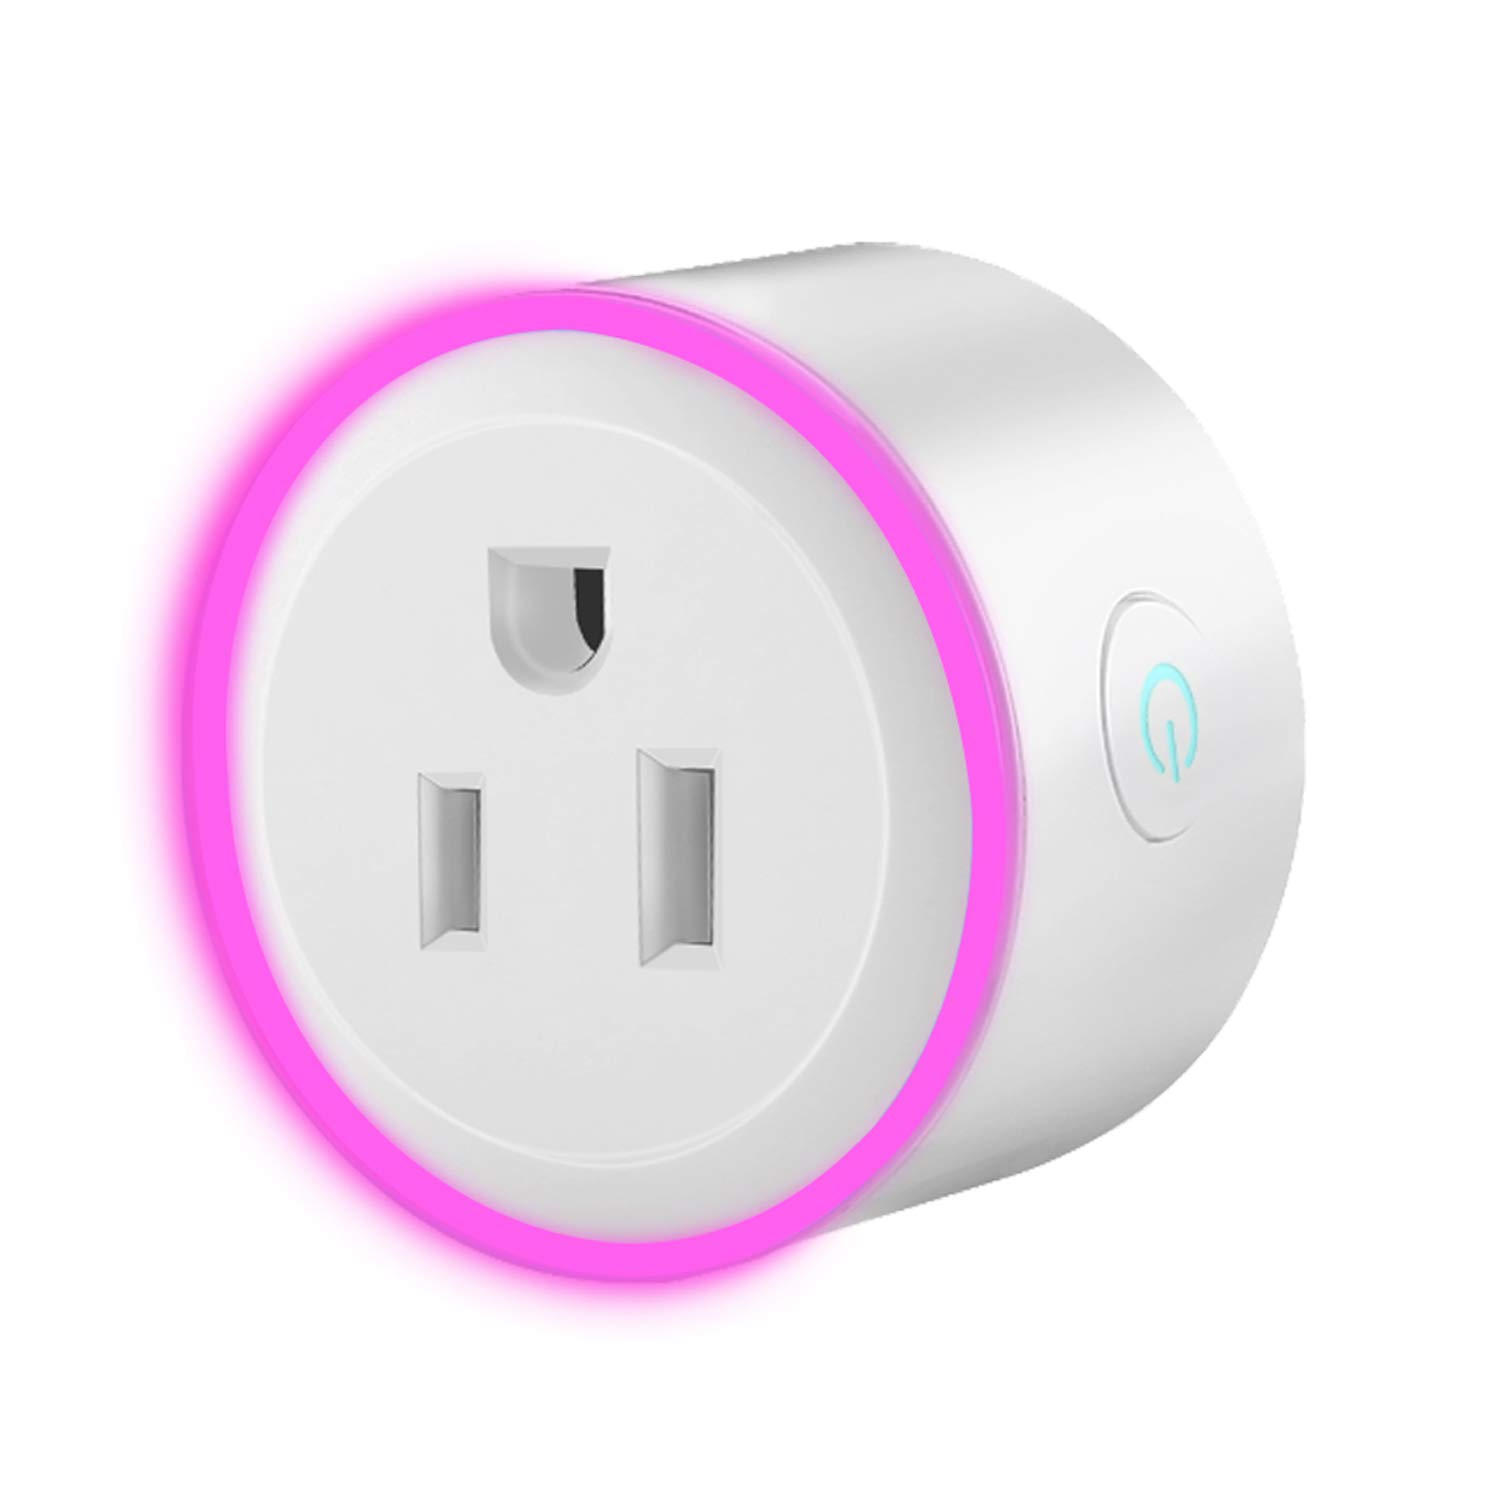 WiFi Smart Mini Plug Socket, Cxy Smart Phone and Voice Controlled Timer Switch with RGB Light Ring for Household Appliances, No Need Hub, Works with Amazon Echo and Google Assistant.(1 Pack)